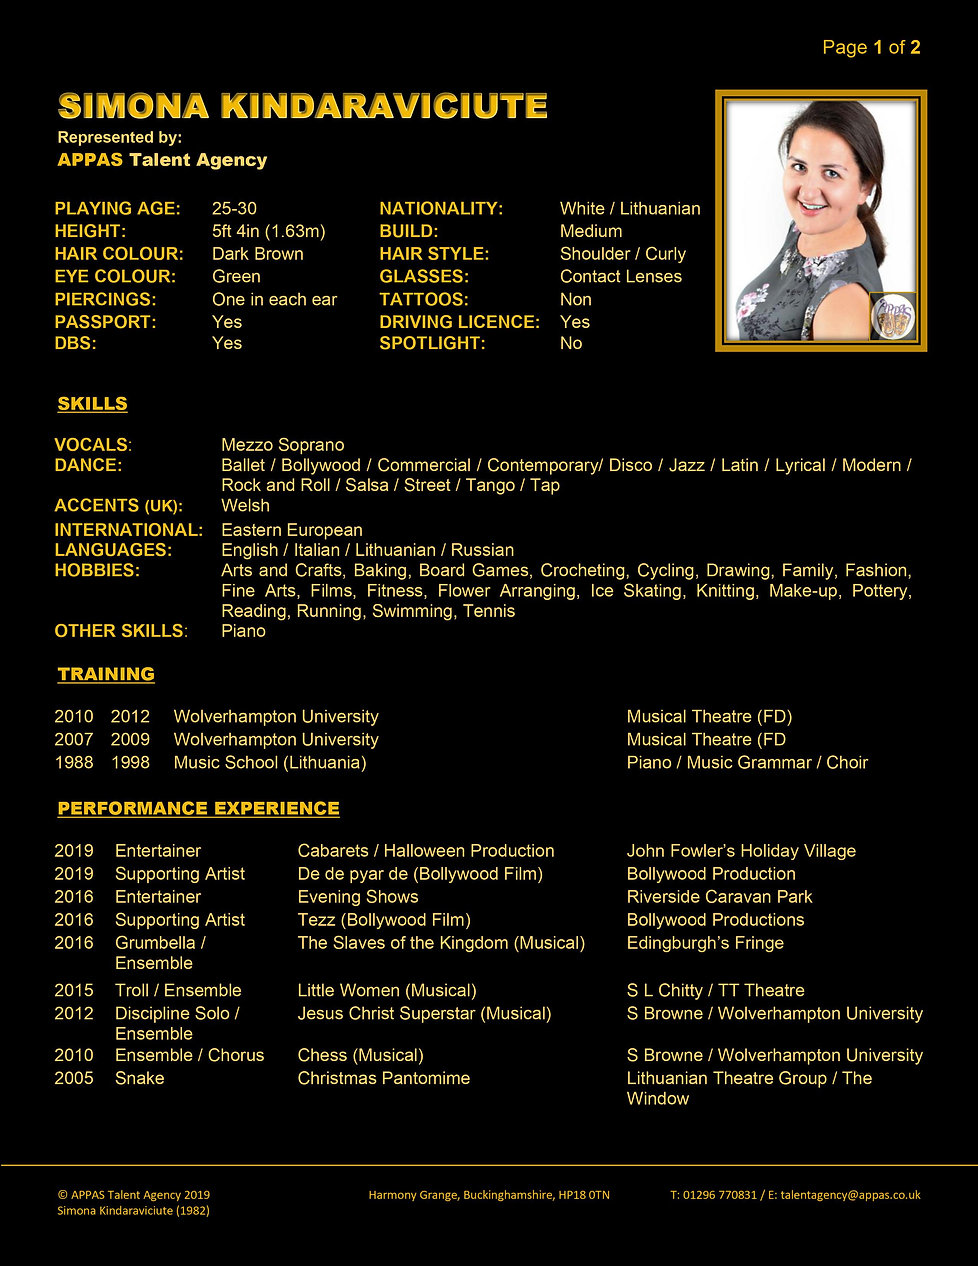 SIMONA KINDARAVICIUTE WEB CV (APR 2020)